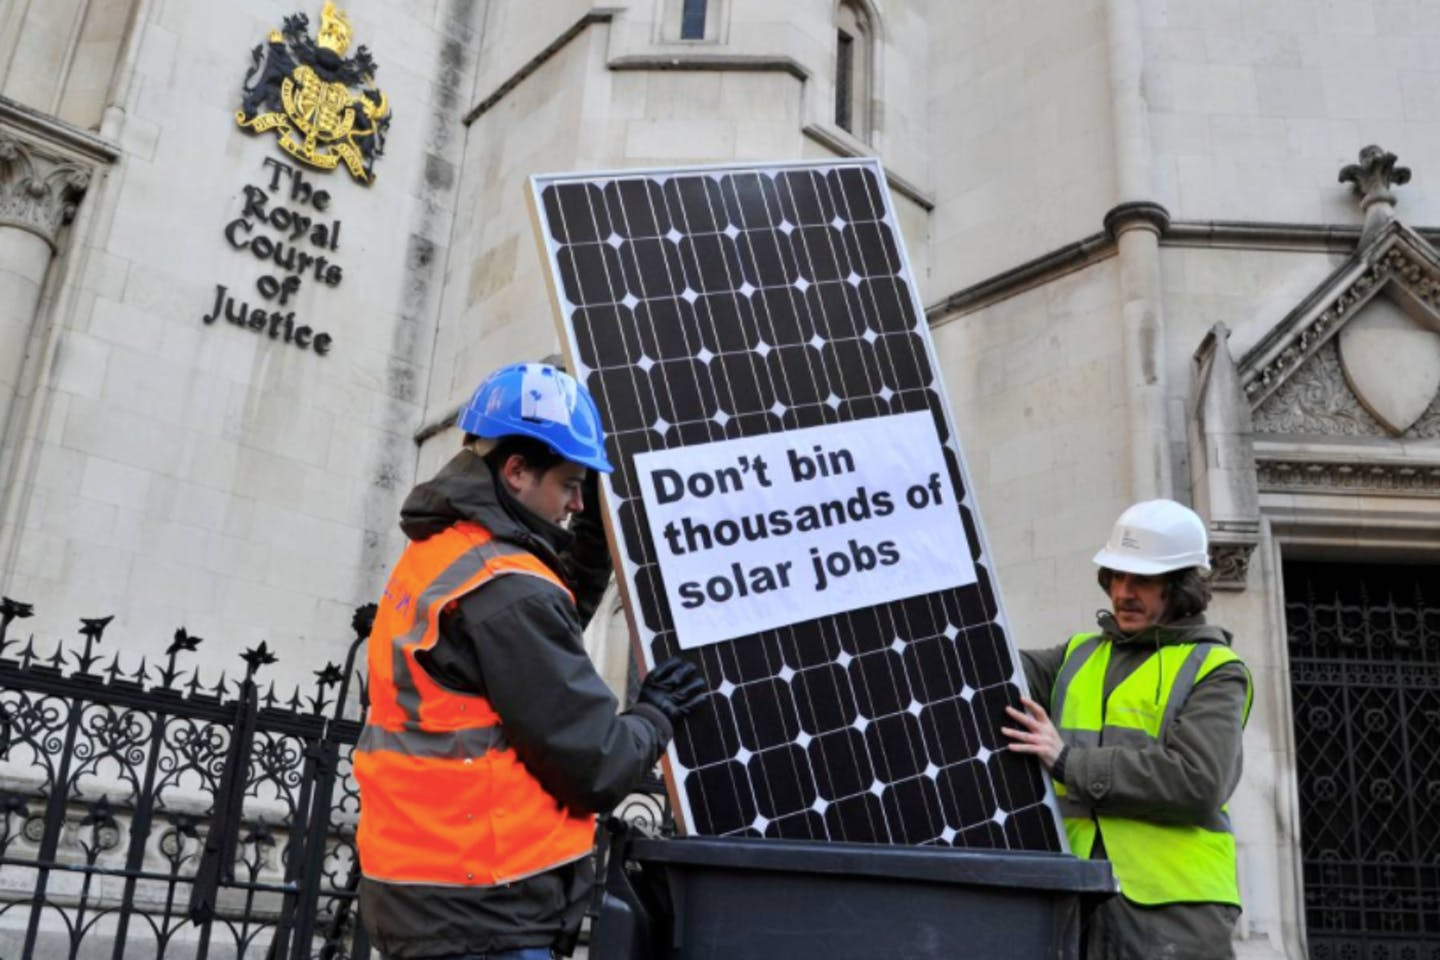 Panel installers pose with a solar panel outside the High Court in central London.